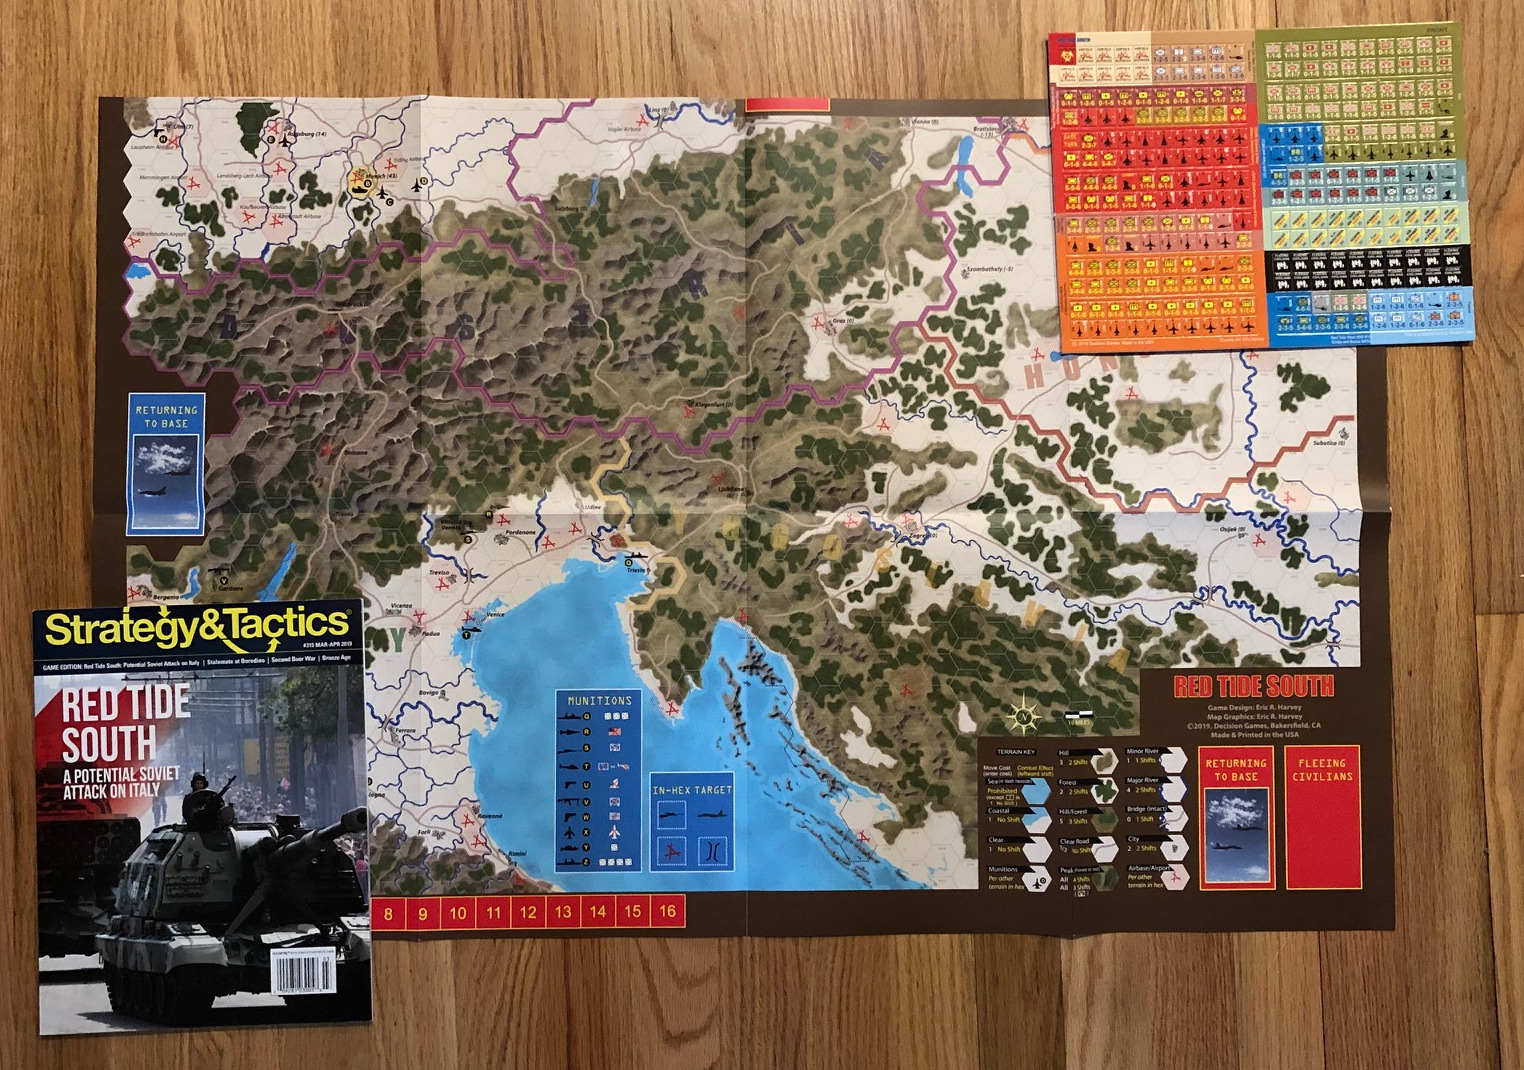 Strategy & Tactics - Game - 315 - Red Tide South - A Potential Soviet Attack on Italy